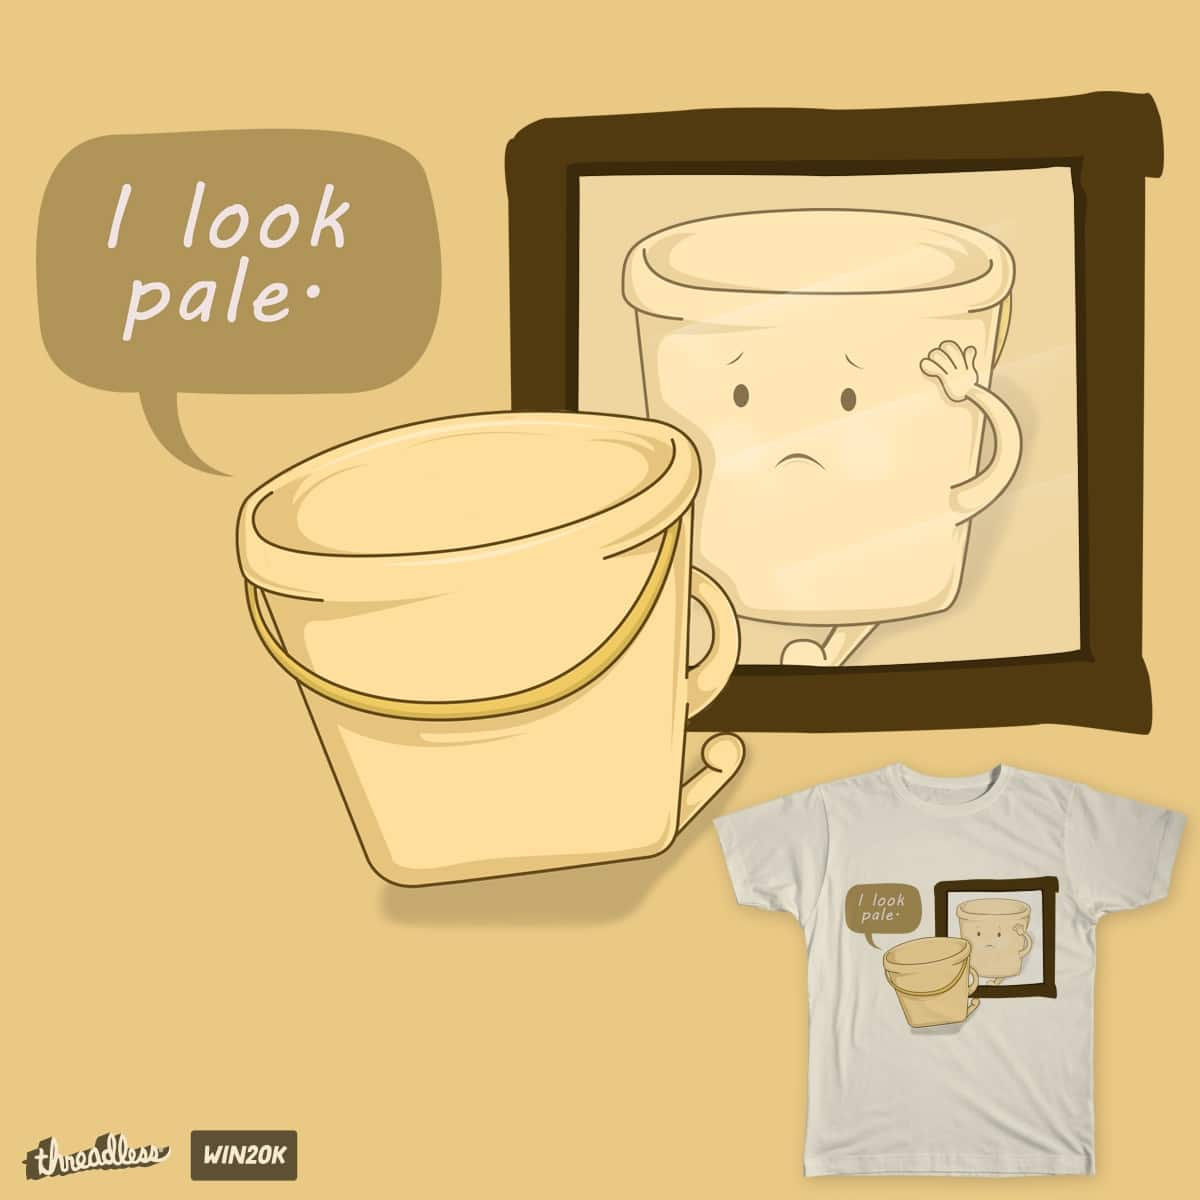 I look pale by Janry on Threadless